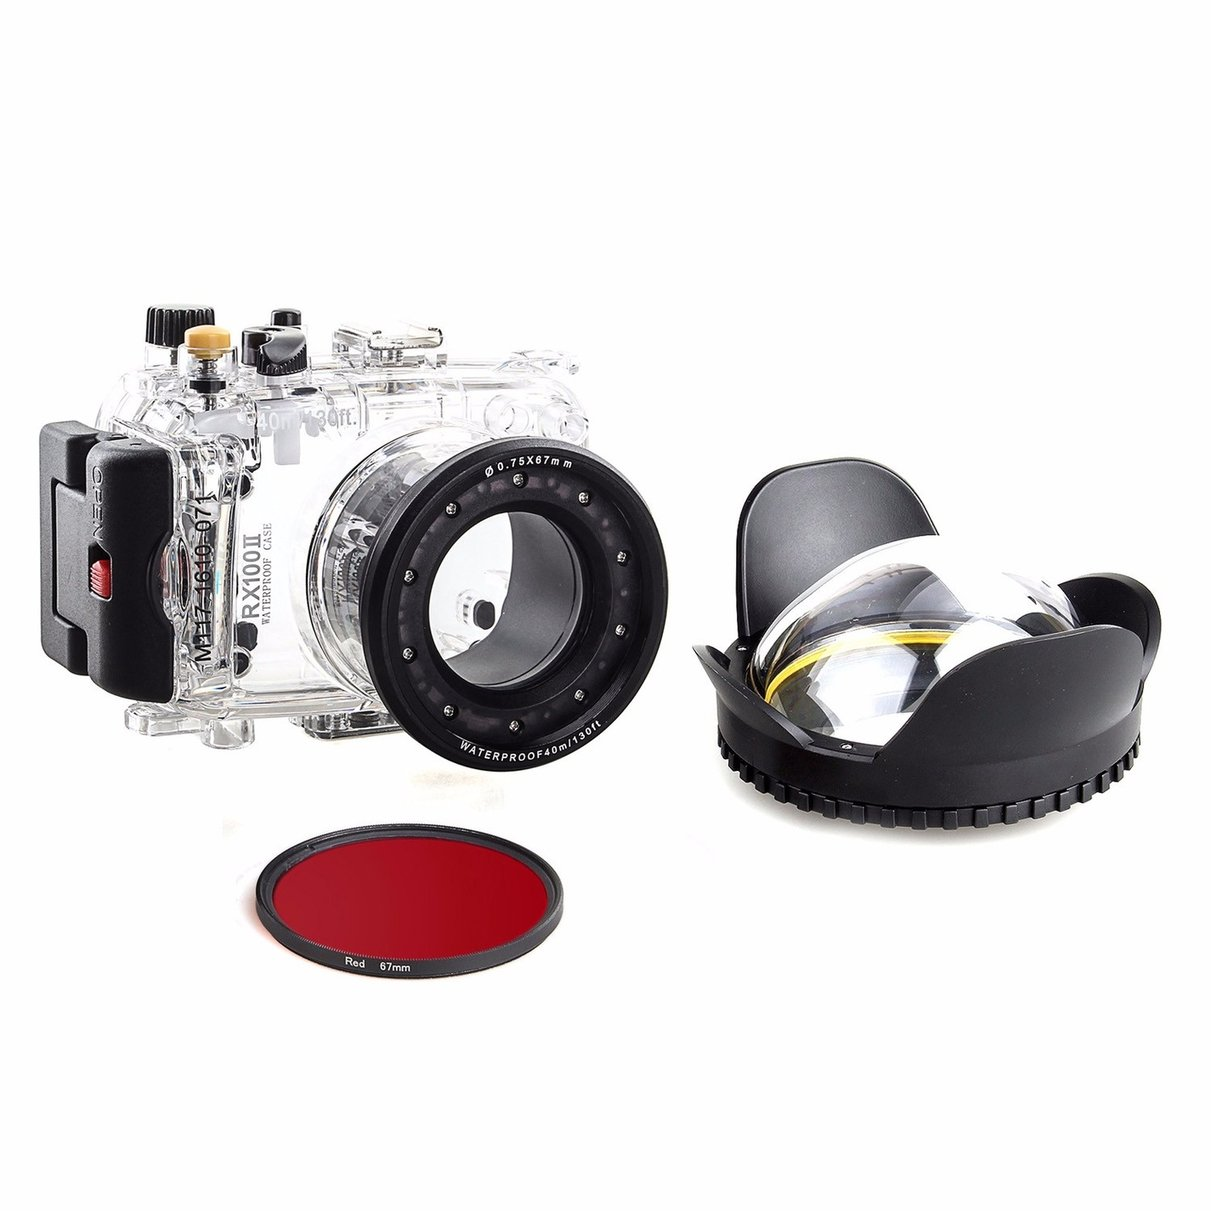 40m/130f Waterproof Underwater Camera Housing Diving Case for SONY DSC RX100 ii + Red Filter 67mm + 67mm Fisheye Lens vr360 panoramic camera wi fi remote control sports action camera